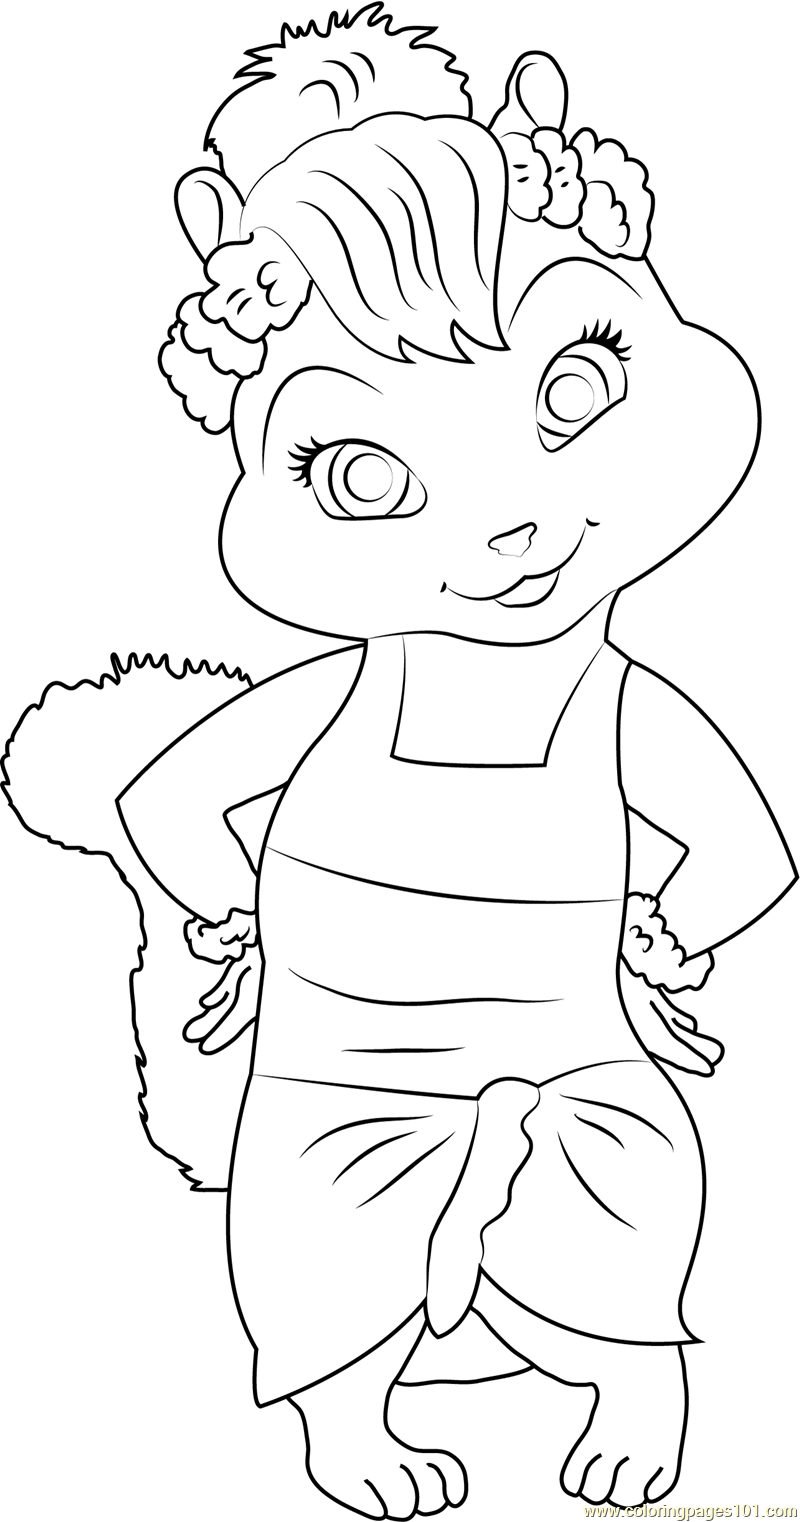 Jeanette Coloring Page - Free Alvin and the Chipmunks ...